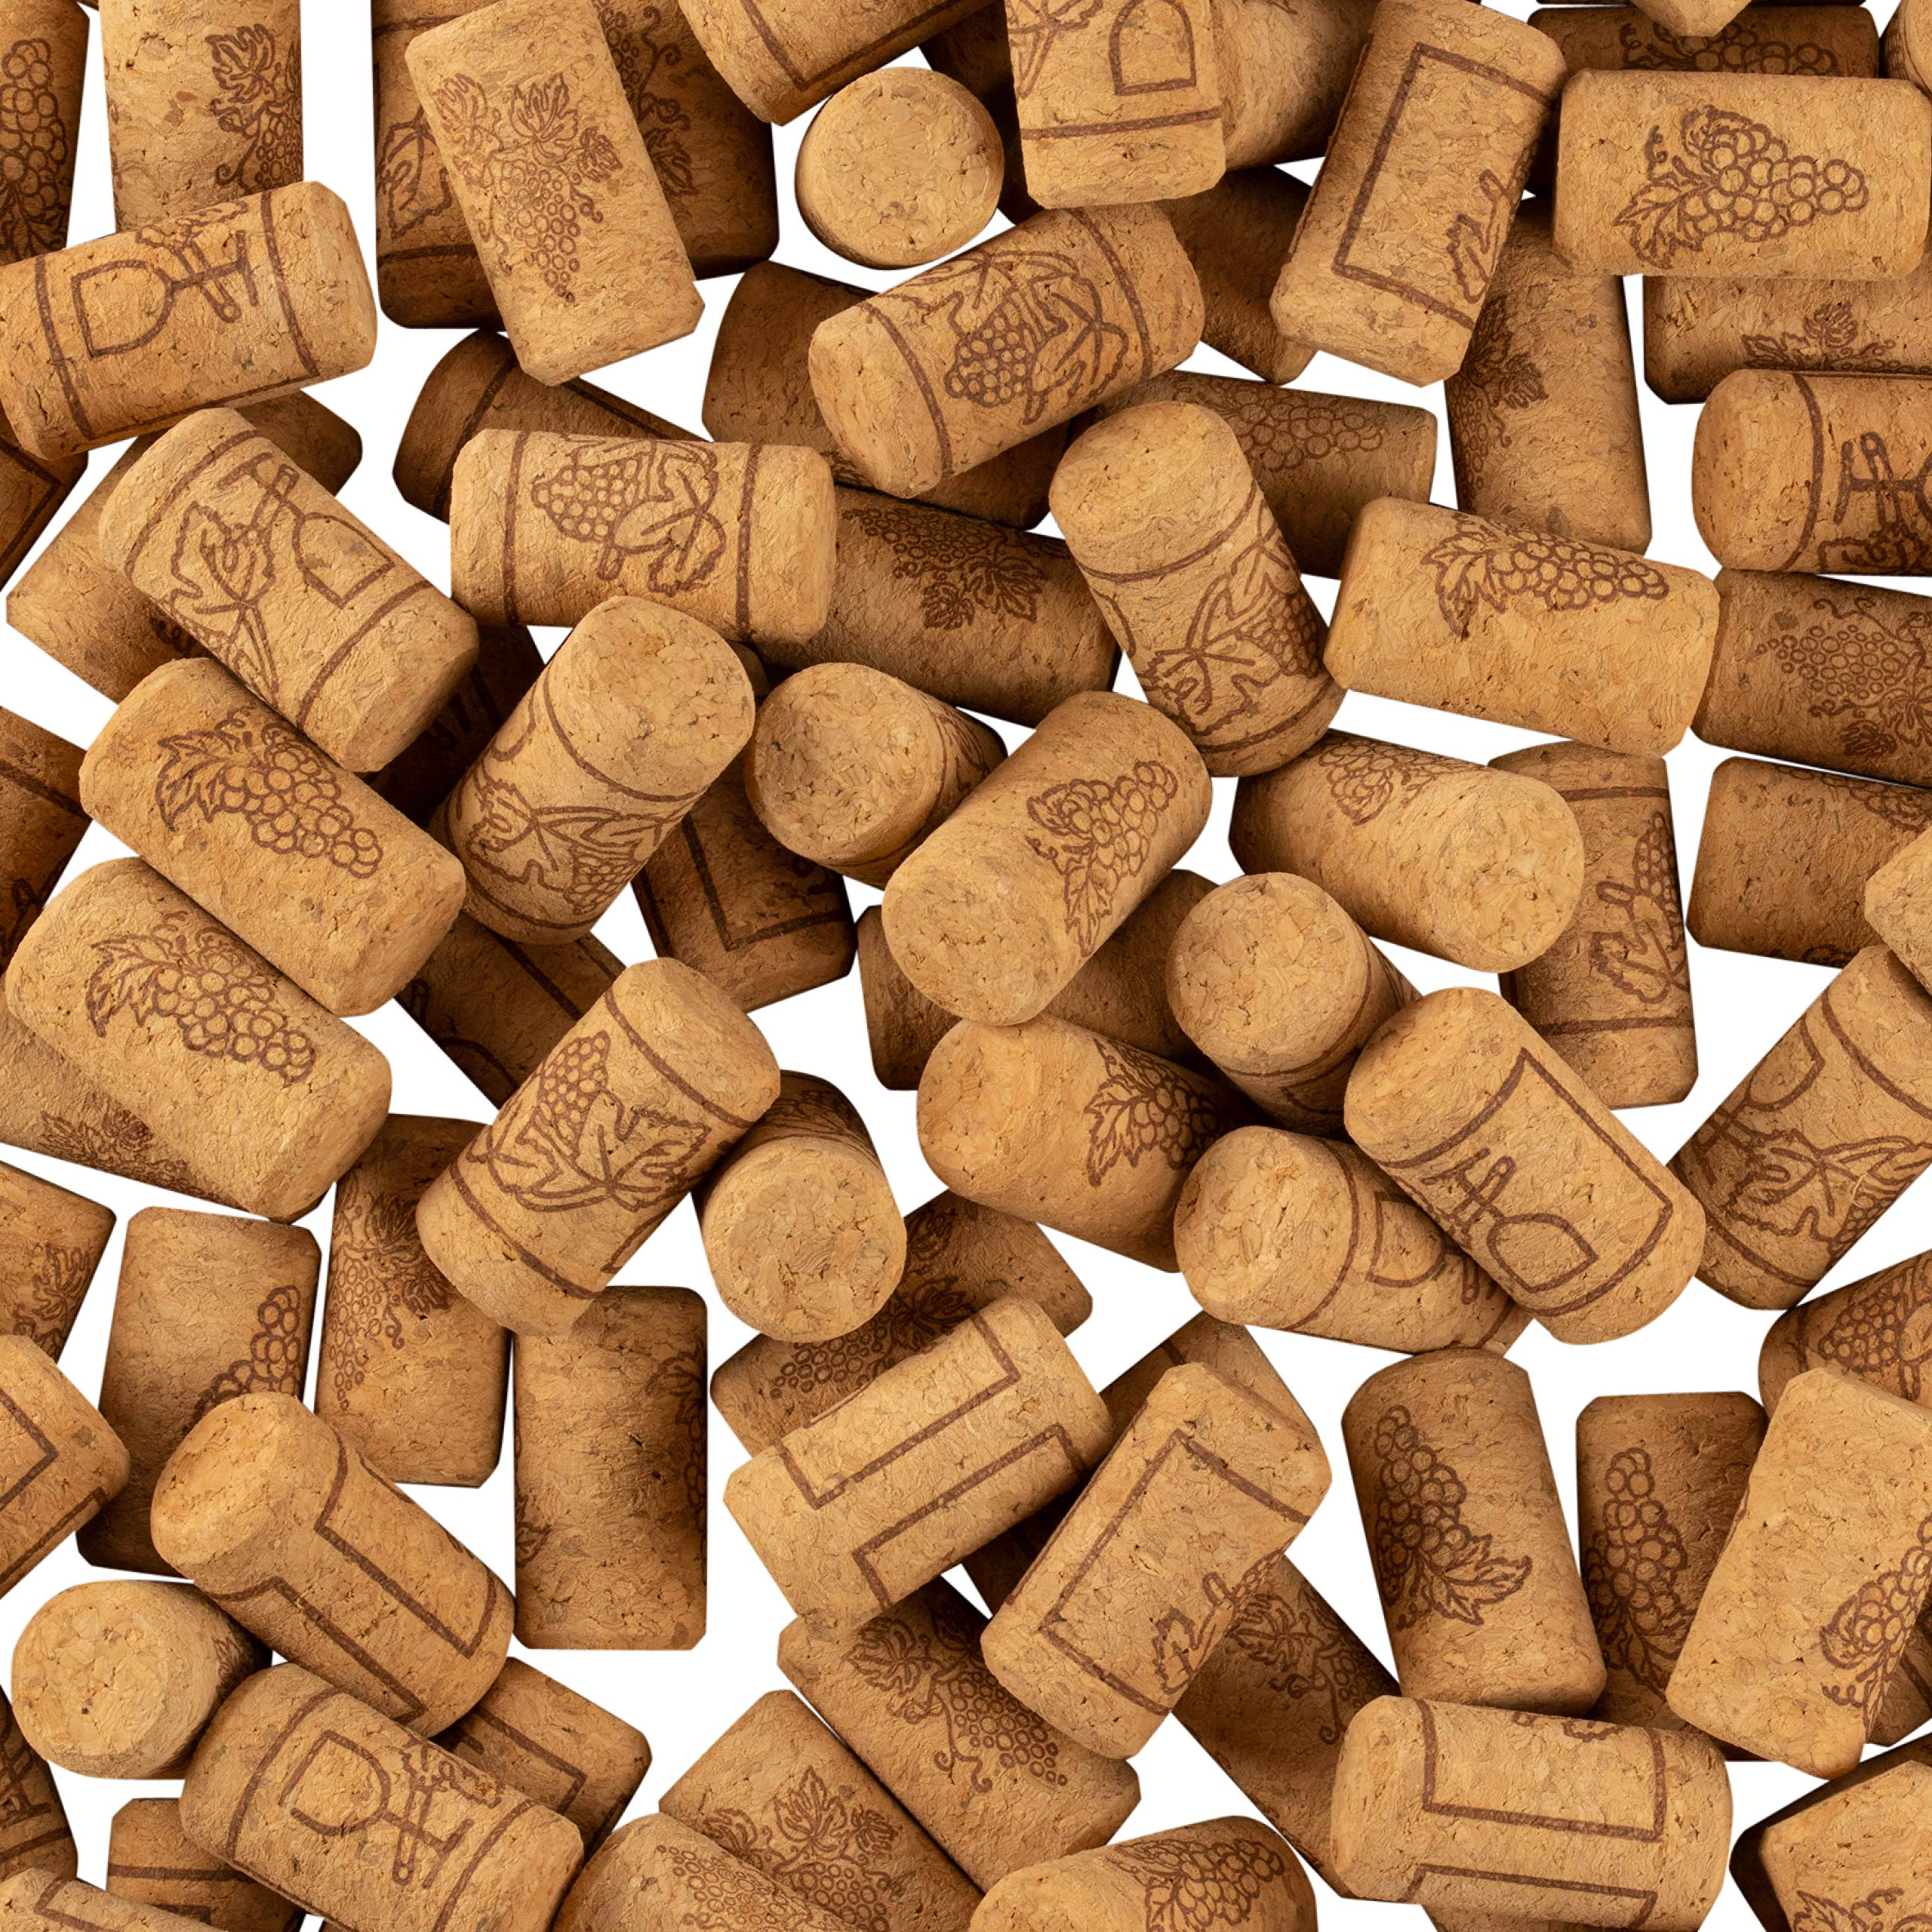 Set of 200 Wine Corks - Bottle Corks with Grape Vine Design, Non-Recycled Straight Corks, Natural Cork Stoppers, Brown - 0.93 x 1.7 Inches by Juvale (Image #5)